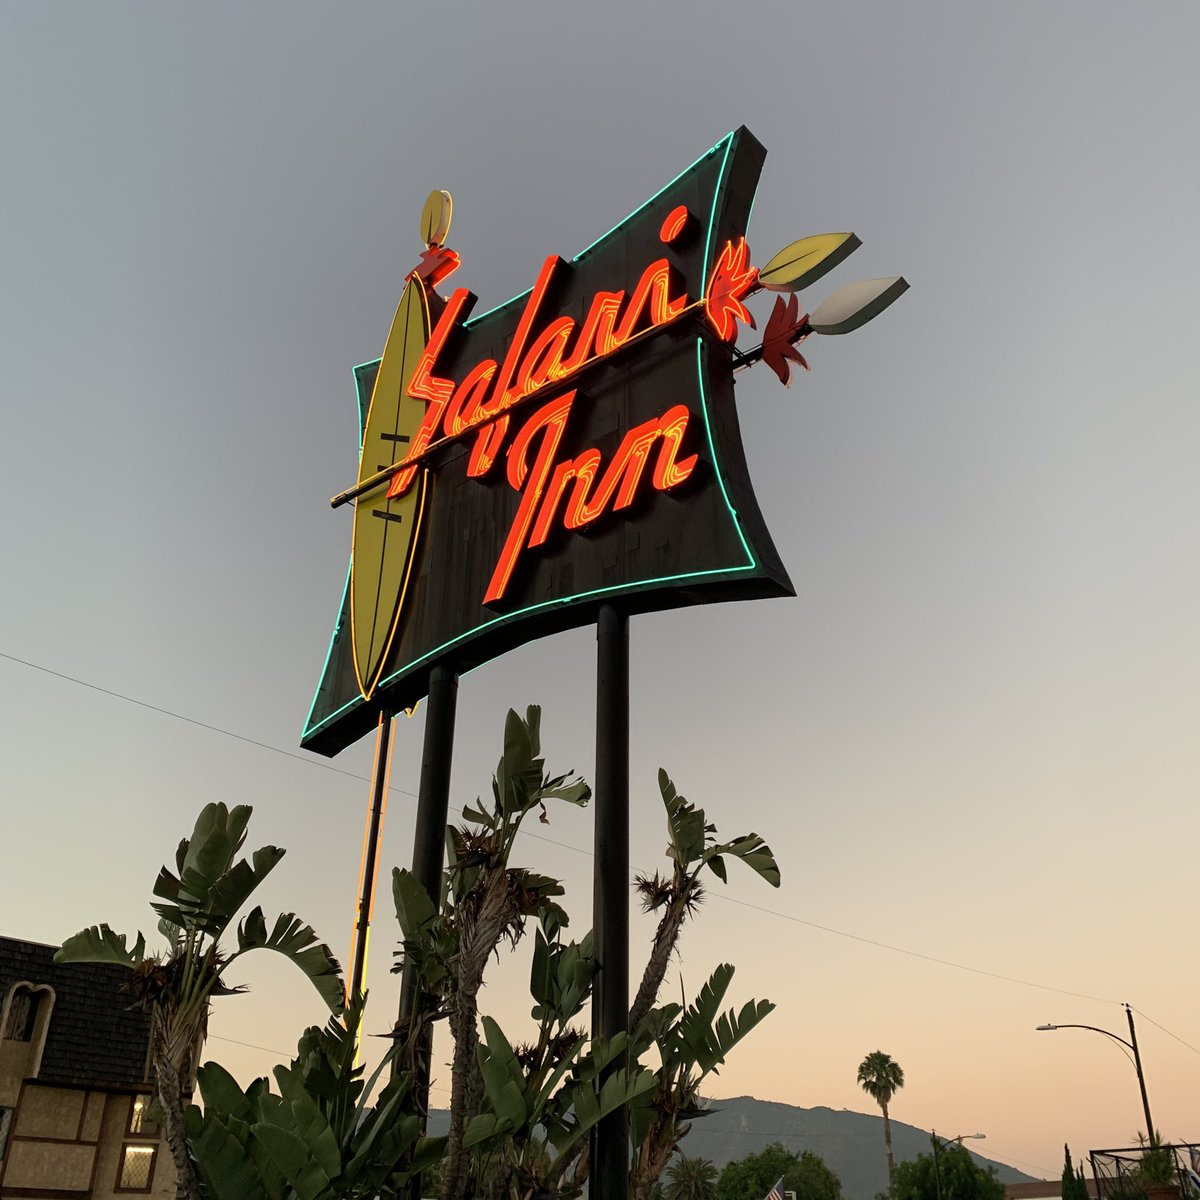 The home of @TheChrisRubio Top 12 is the Safari Inn. Built in 1955, the hotel has been featured in many movies and TV shows including Lethal Weapon, True Romance, Coach Carter, Apollo 13, Six Feet Under, CSI and The Partridge Family.  #HistoricalLandmark #TeamRubio #TheFactory